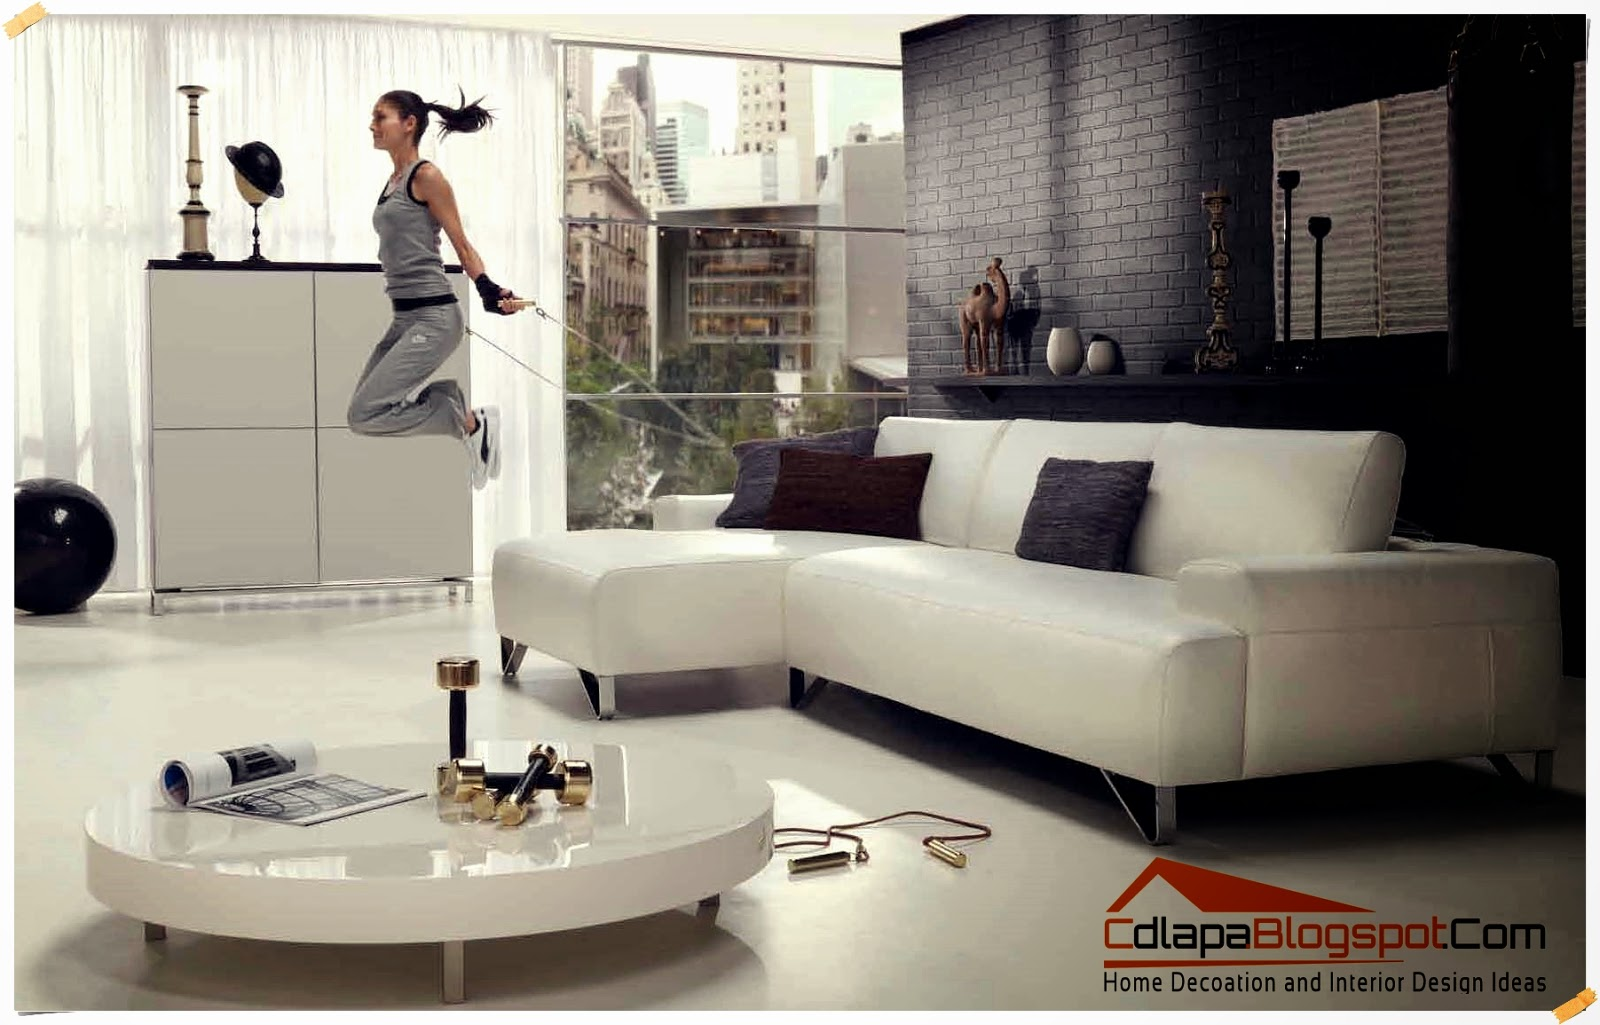 Home decoration and interior design ideas modern small for Small modern living room designs